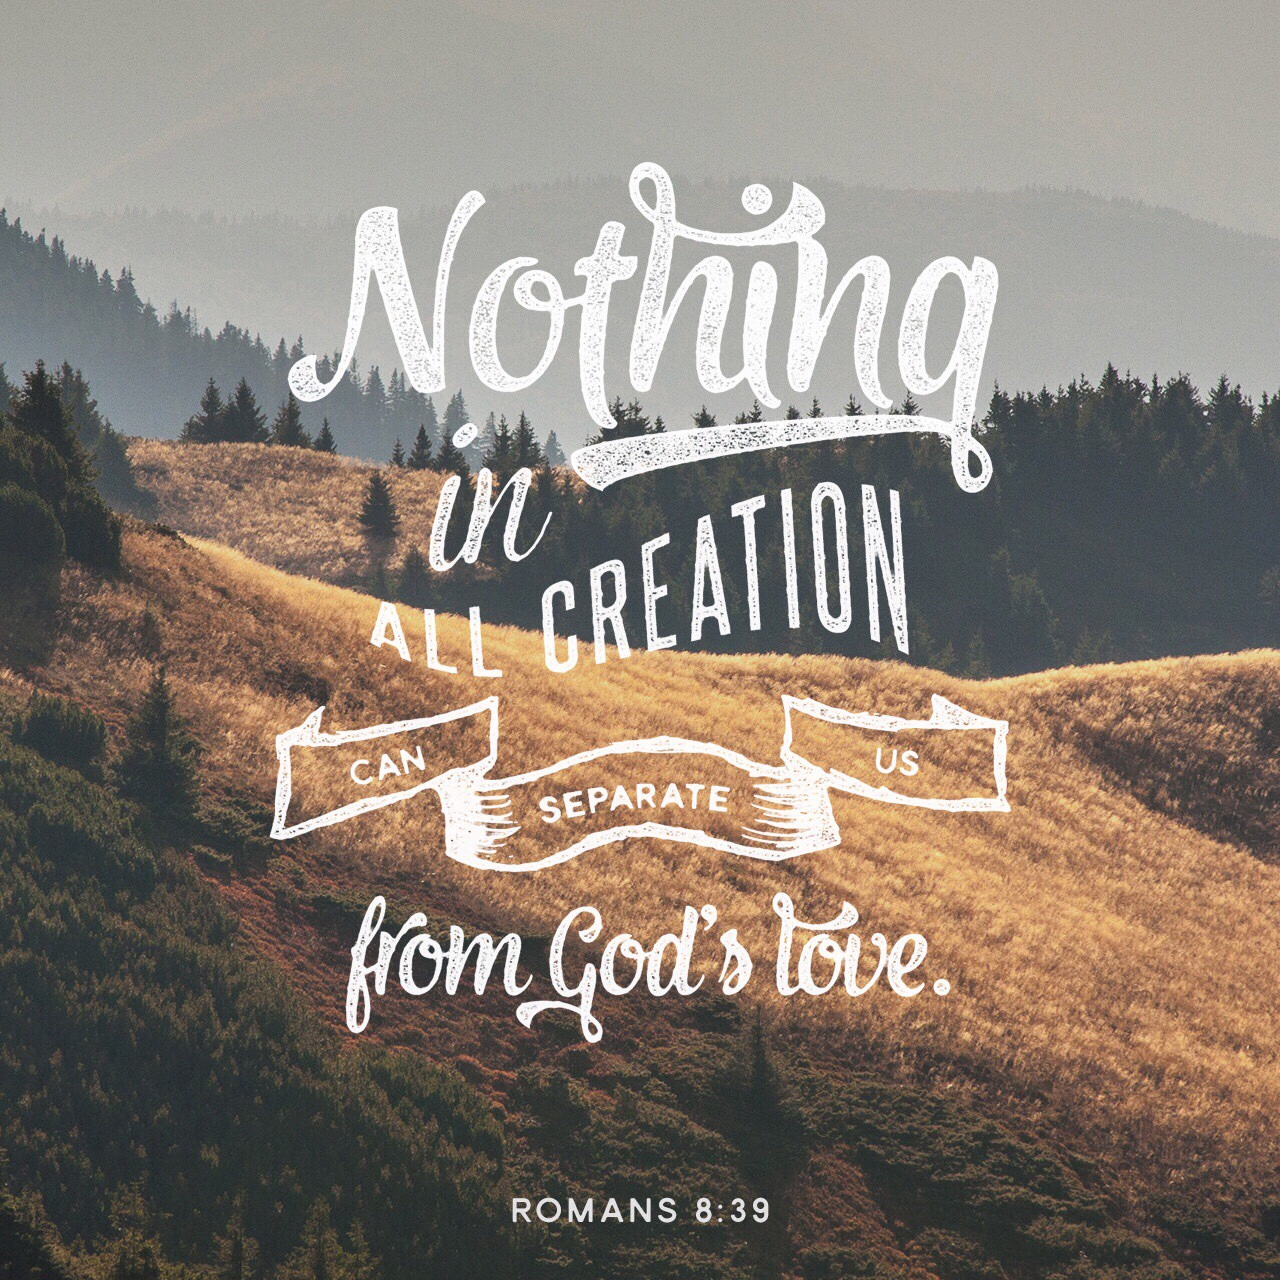 """VOTD June 11, 2019 """"For I am convinced that neither death, nor life, nor angels, nor principalities, nor things present, nor things to come, nor powers, nor height, nor depth, nor any other created thing, will be able to separate us from the love of God, which is in Christ Jesus our Lord."""" ROMANS 8:38-39 NASB"""